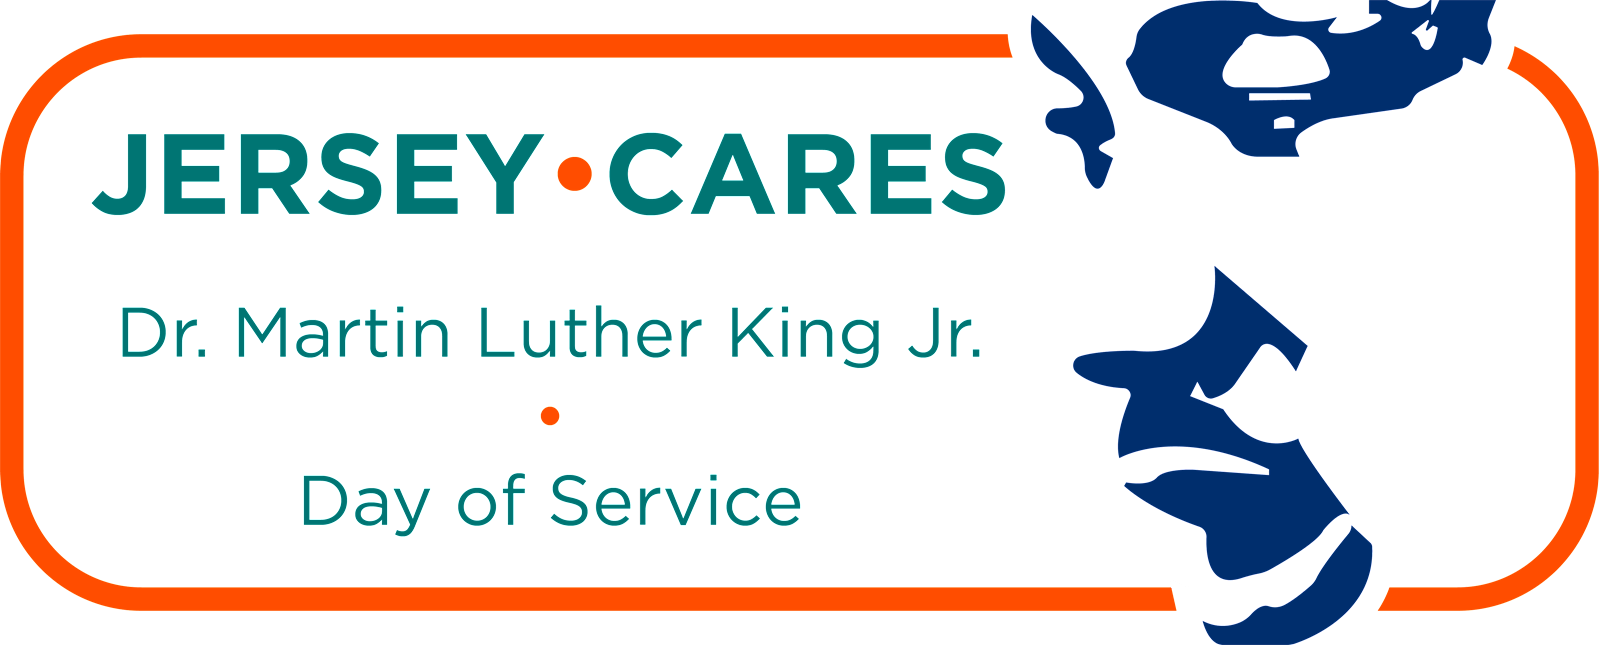 Jersey Cares Martin Luther King Day Of Service